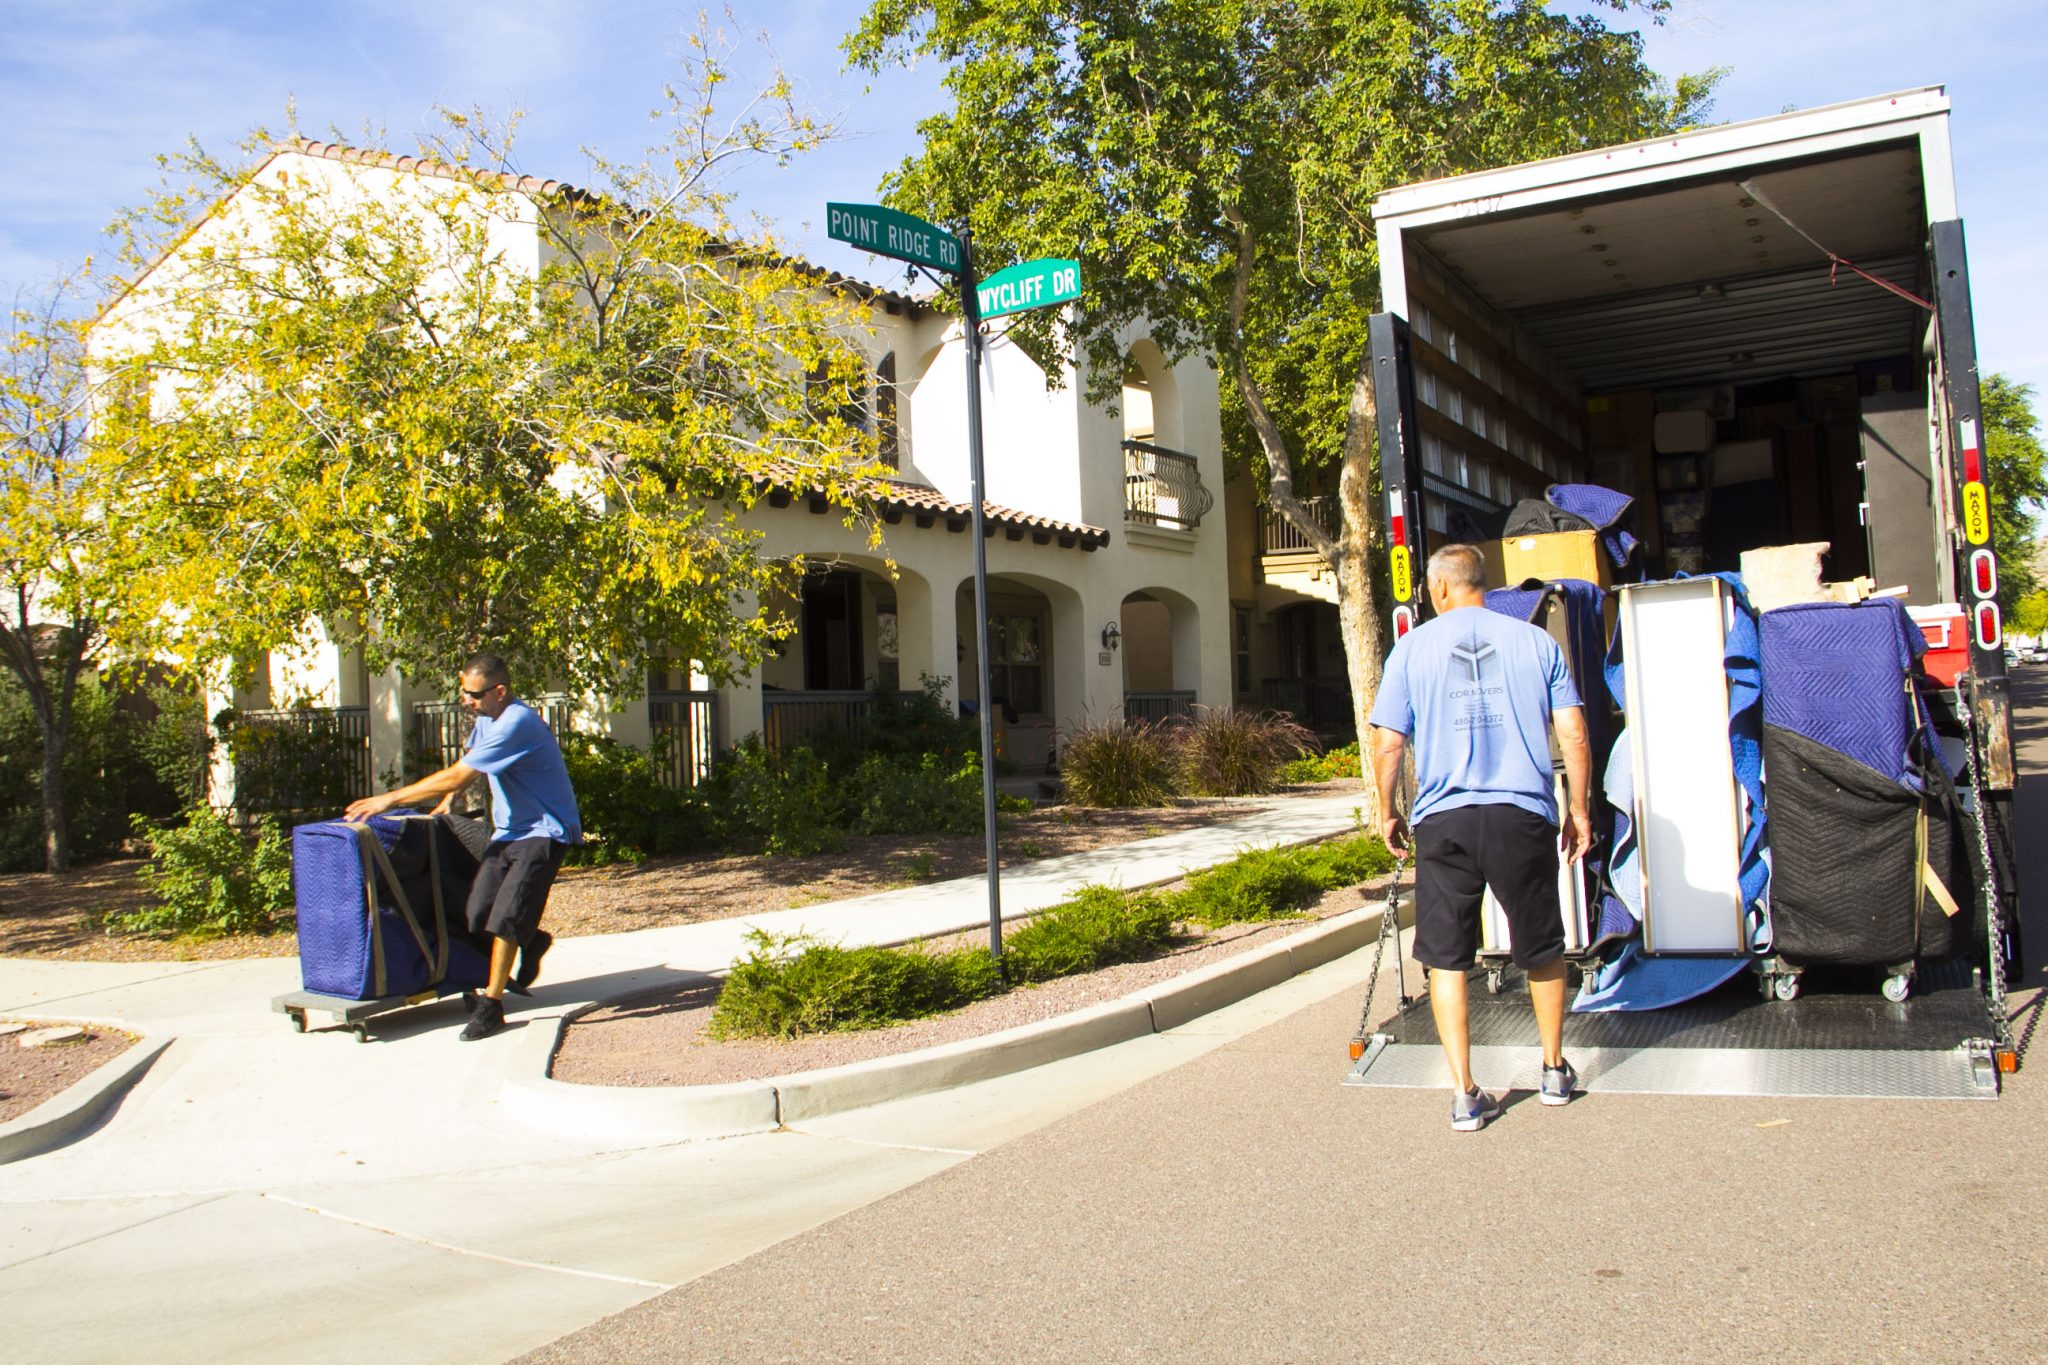 Moving company for Home Appliances Serving Phoenix, Greater Arizona, and Nearby Areas